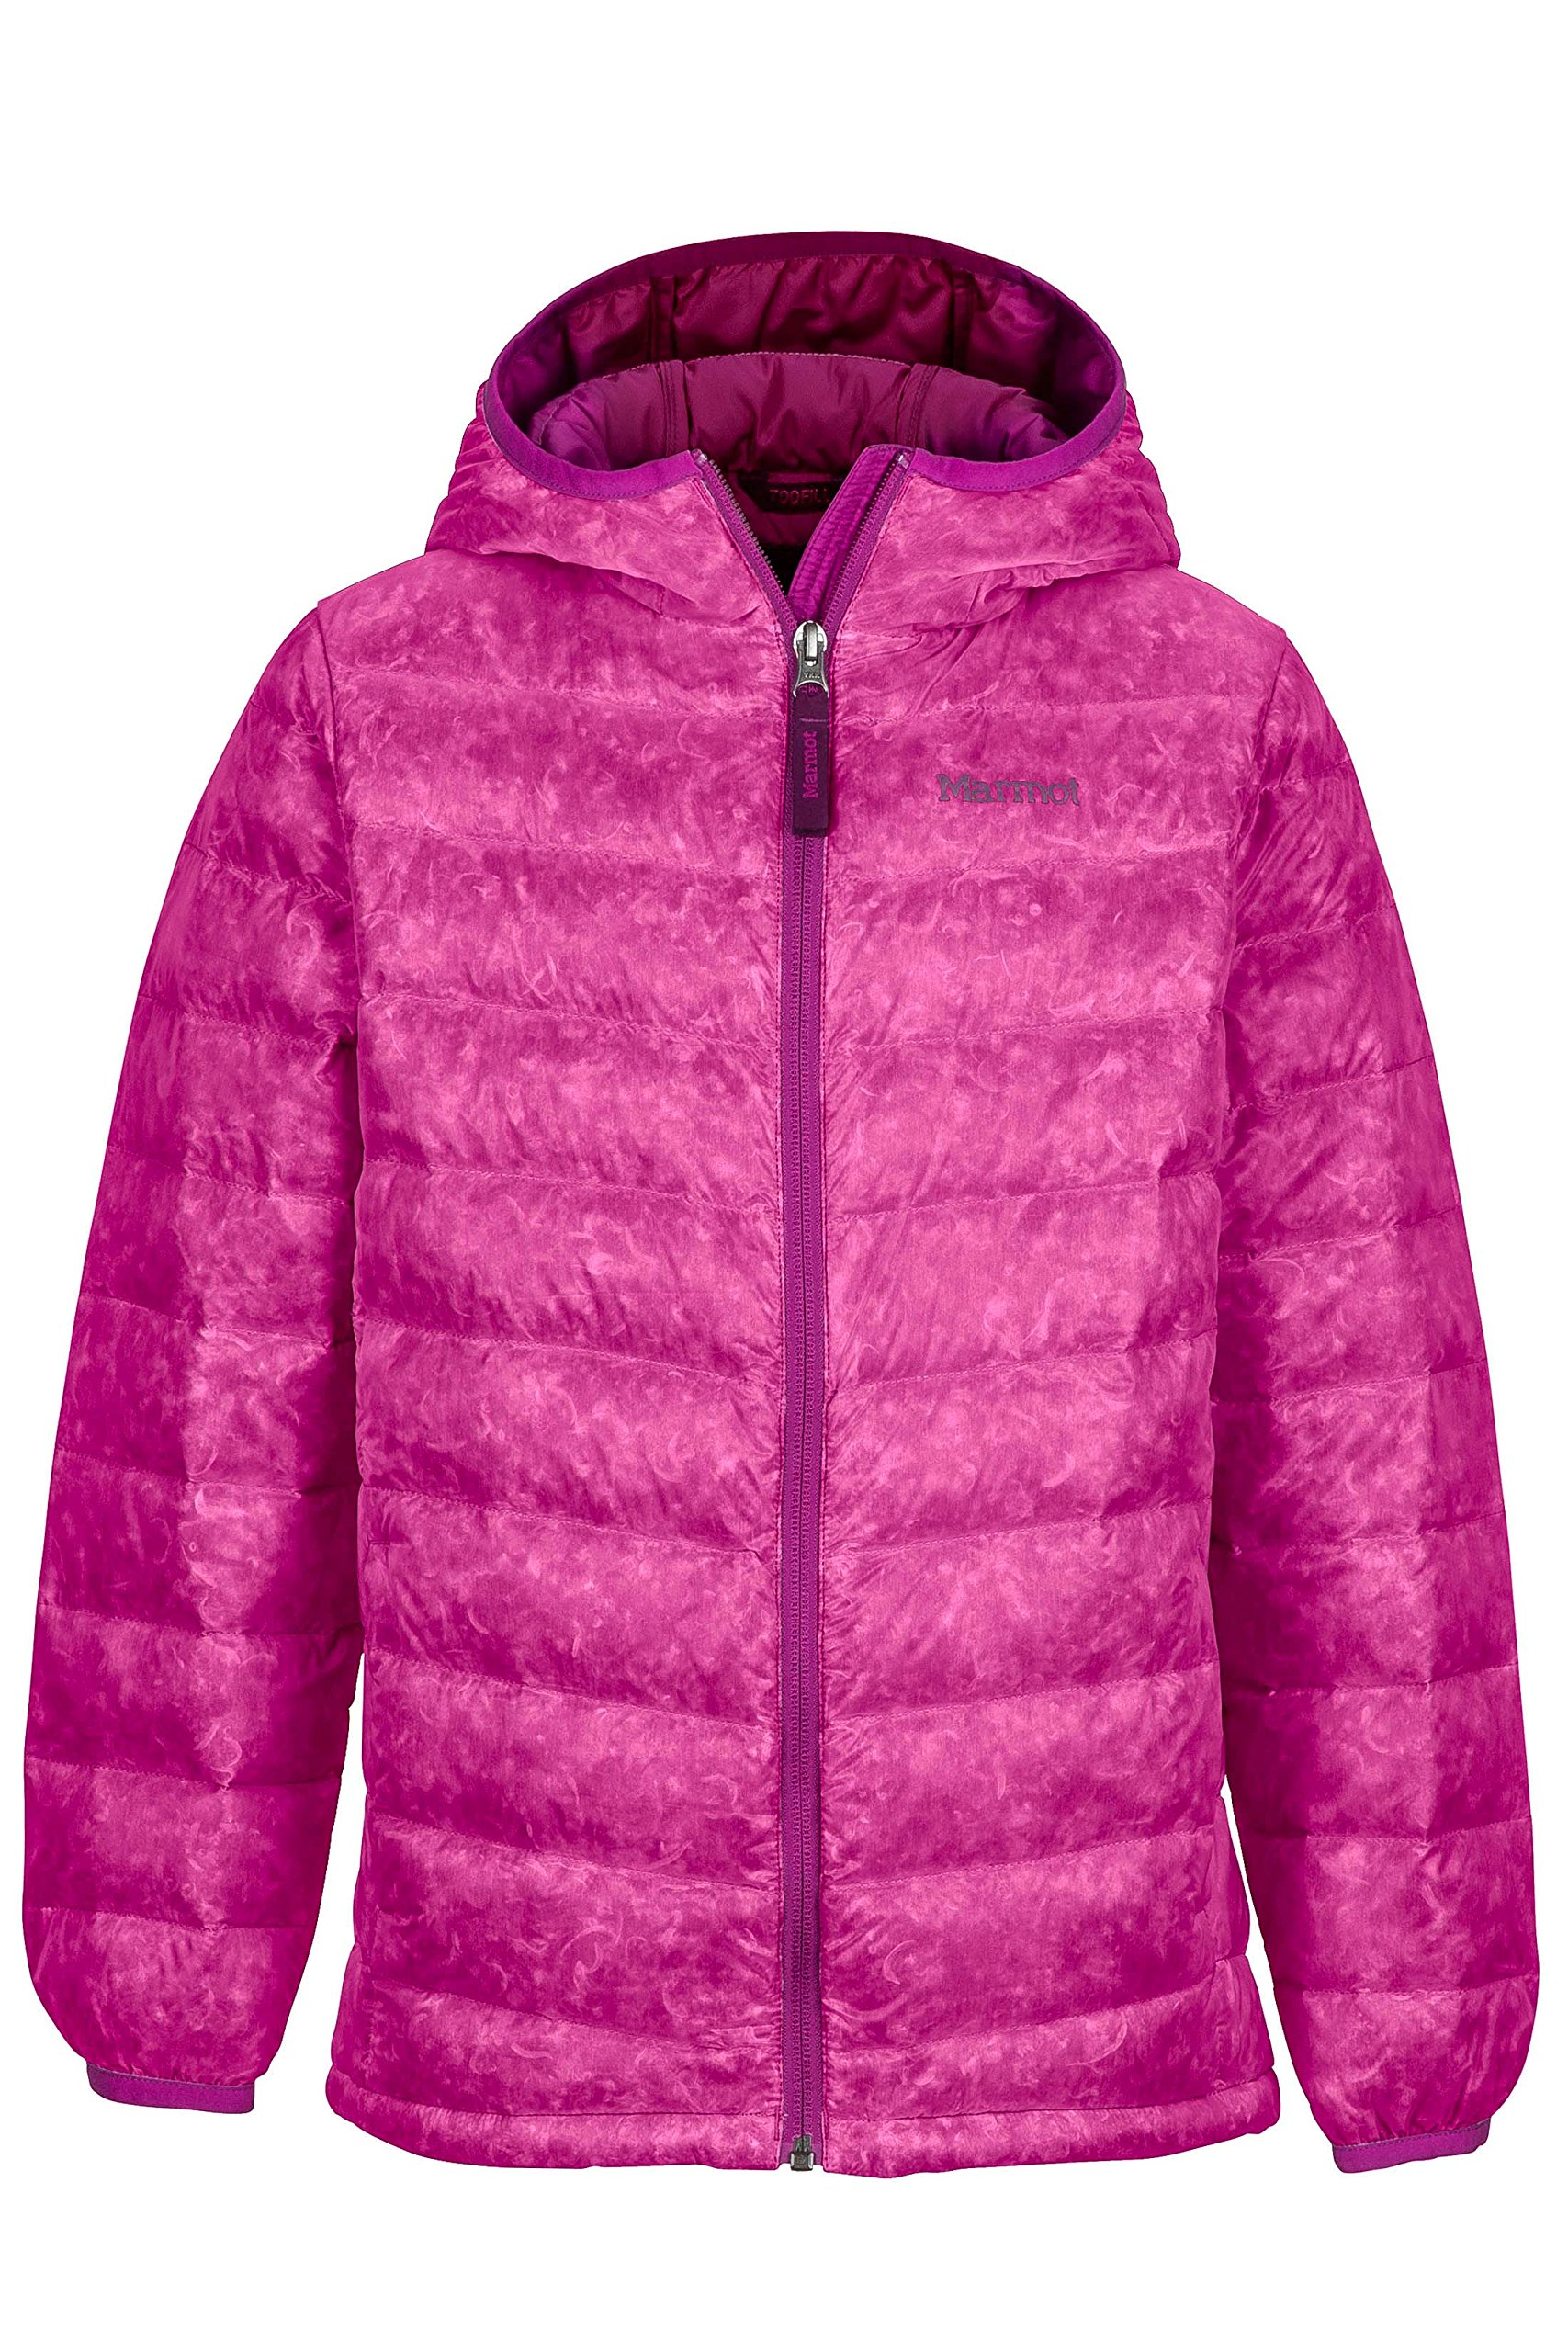 Marmot Girls' Nika Down Puffer Jacket, Fill Power 550, Purple Orchid, Small by Marmot